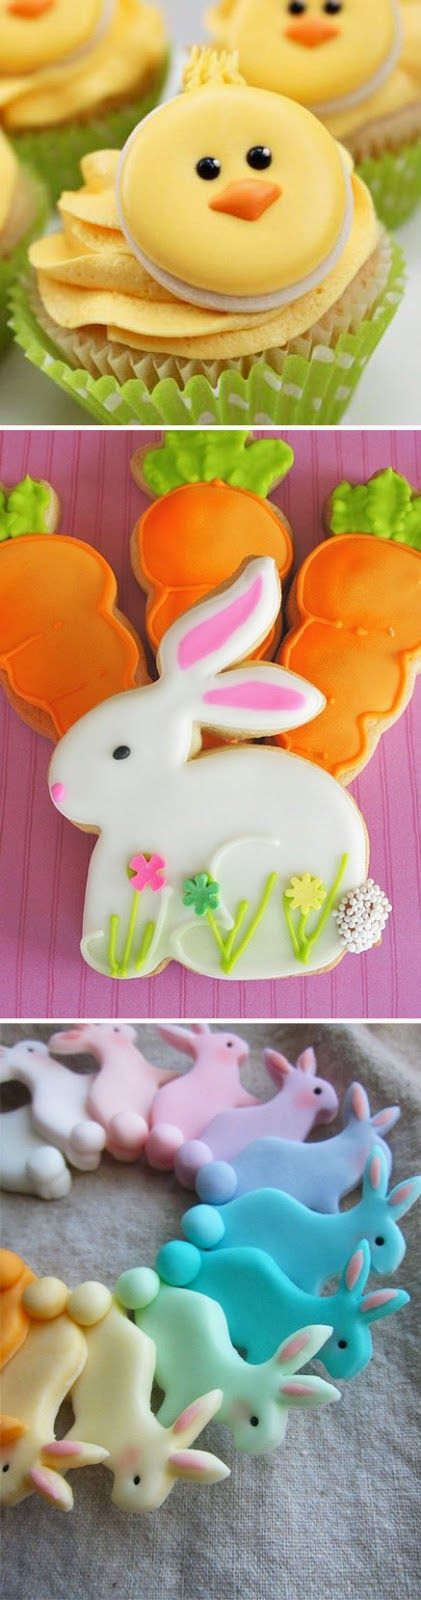 Easter Cookies and Spring Treats Repinned By:#TheCookieCutterCompany